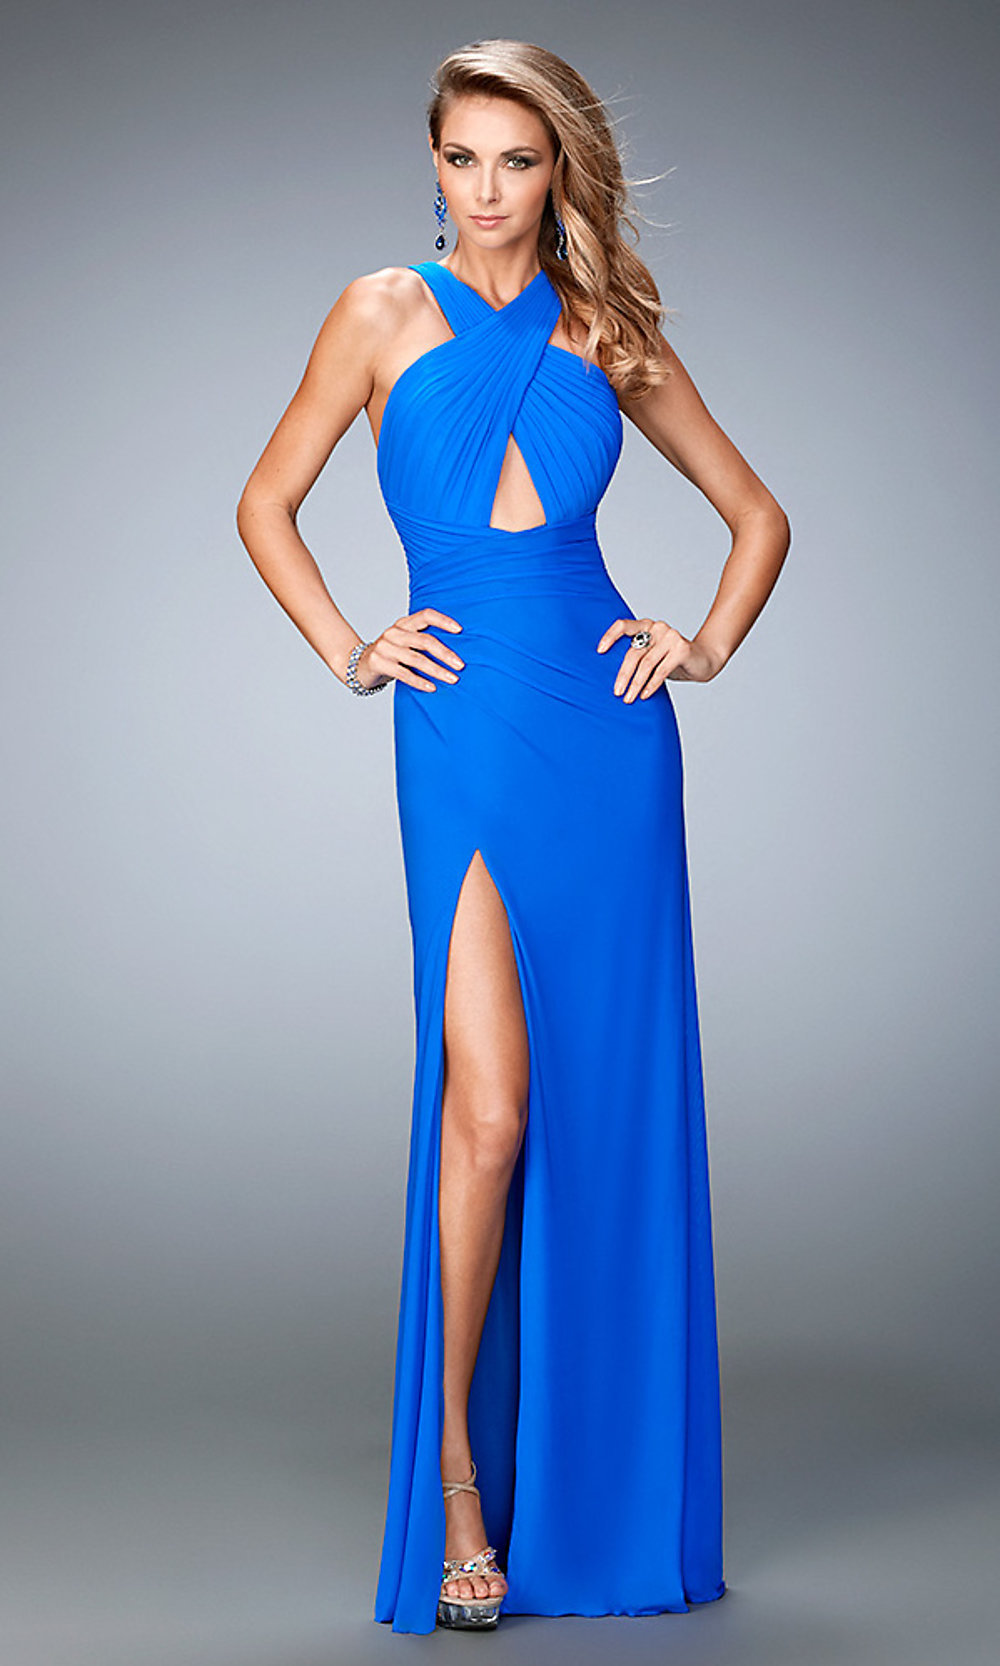 Long Open-Back Cross-Over Prom Dress - PromGirl